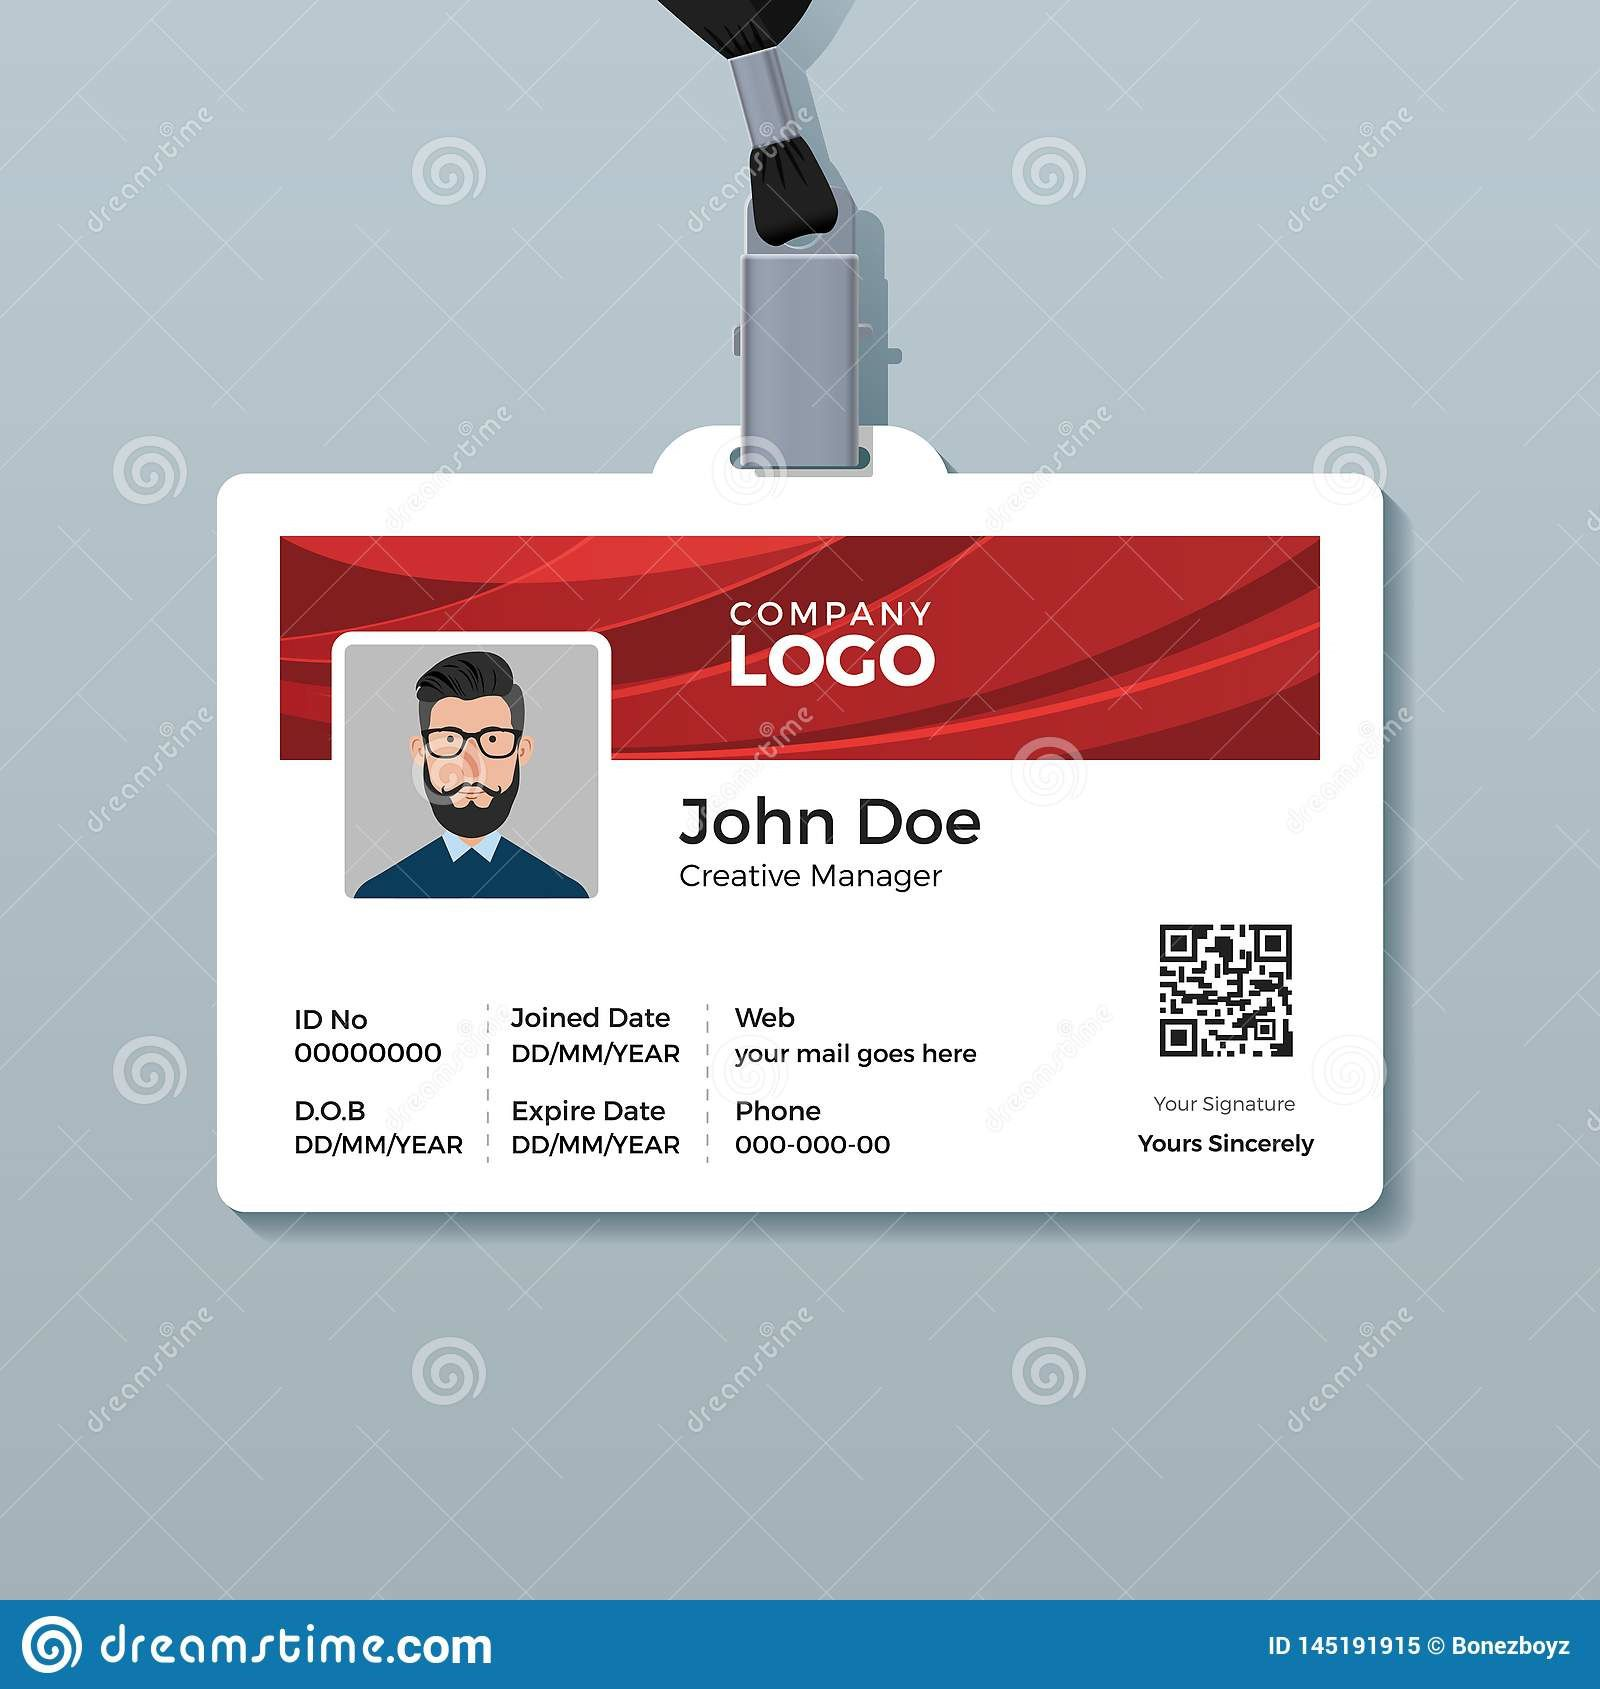 006 Incredible Id Card Template Free Download Concept  Design Photoshop Identity Student WordFull